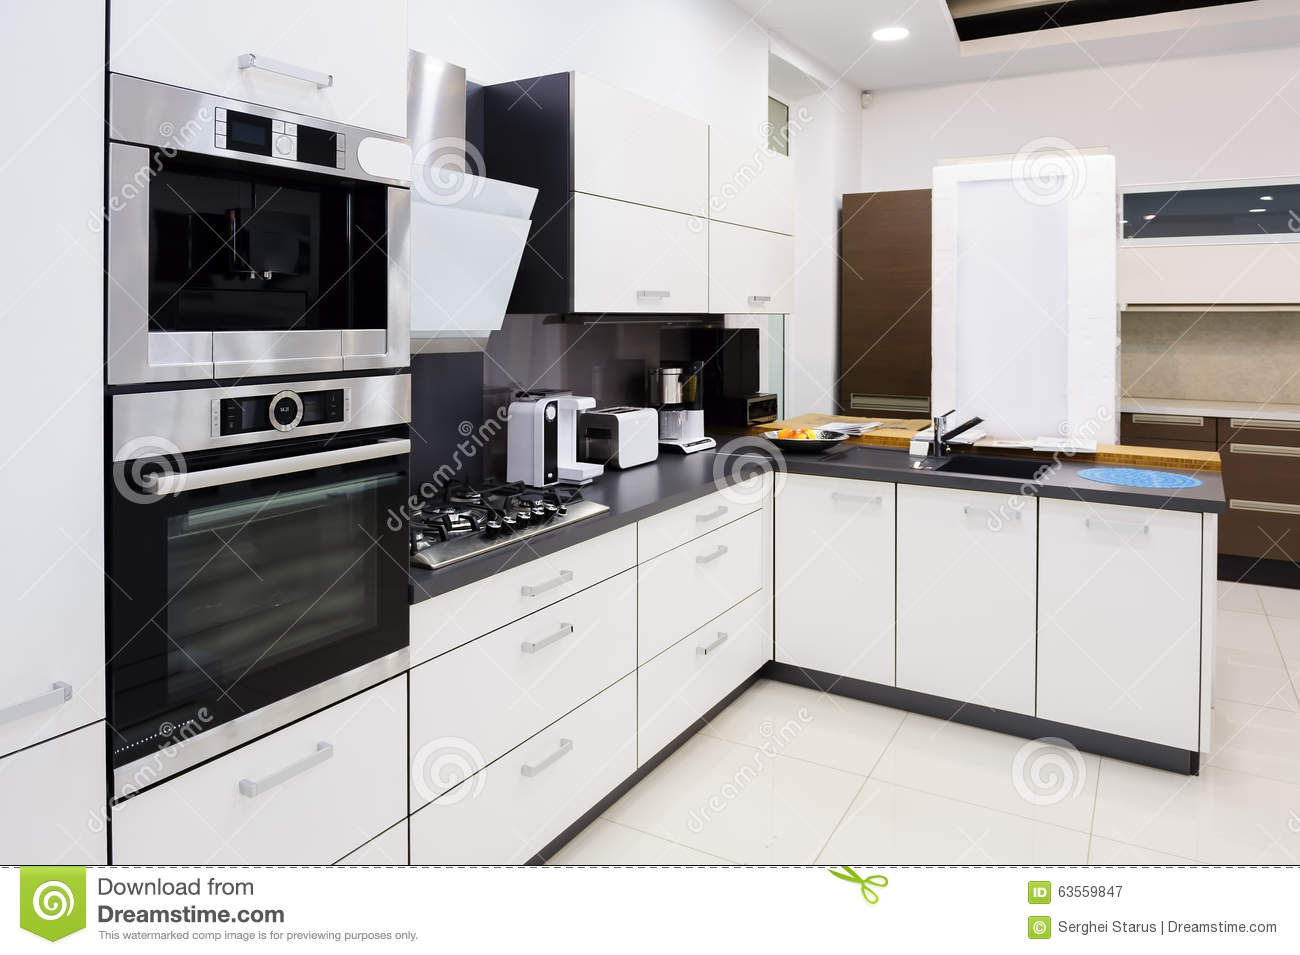 Modern hi tek kitchen clean interior design stock photo for Clean interior design